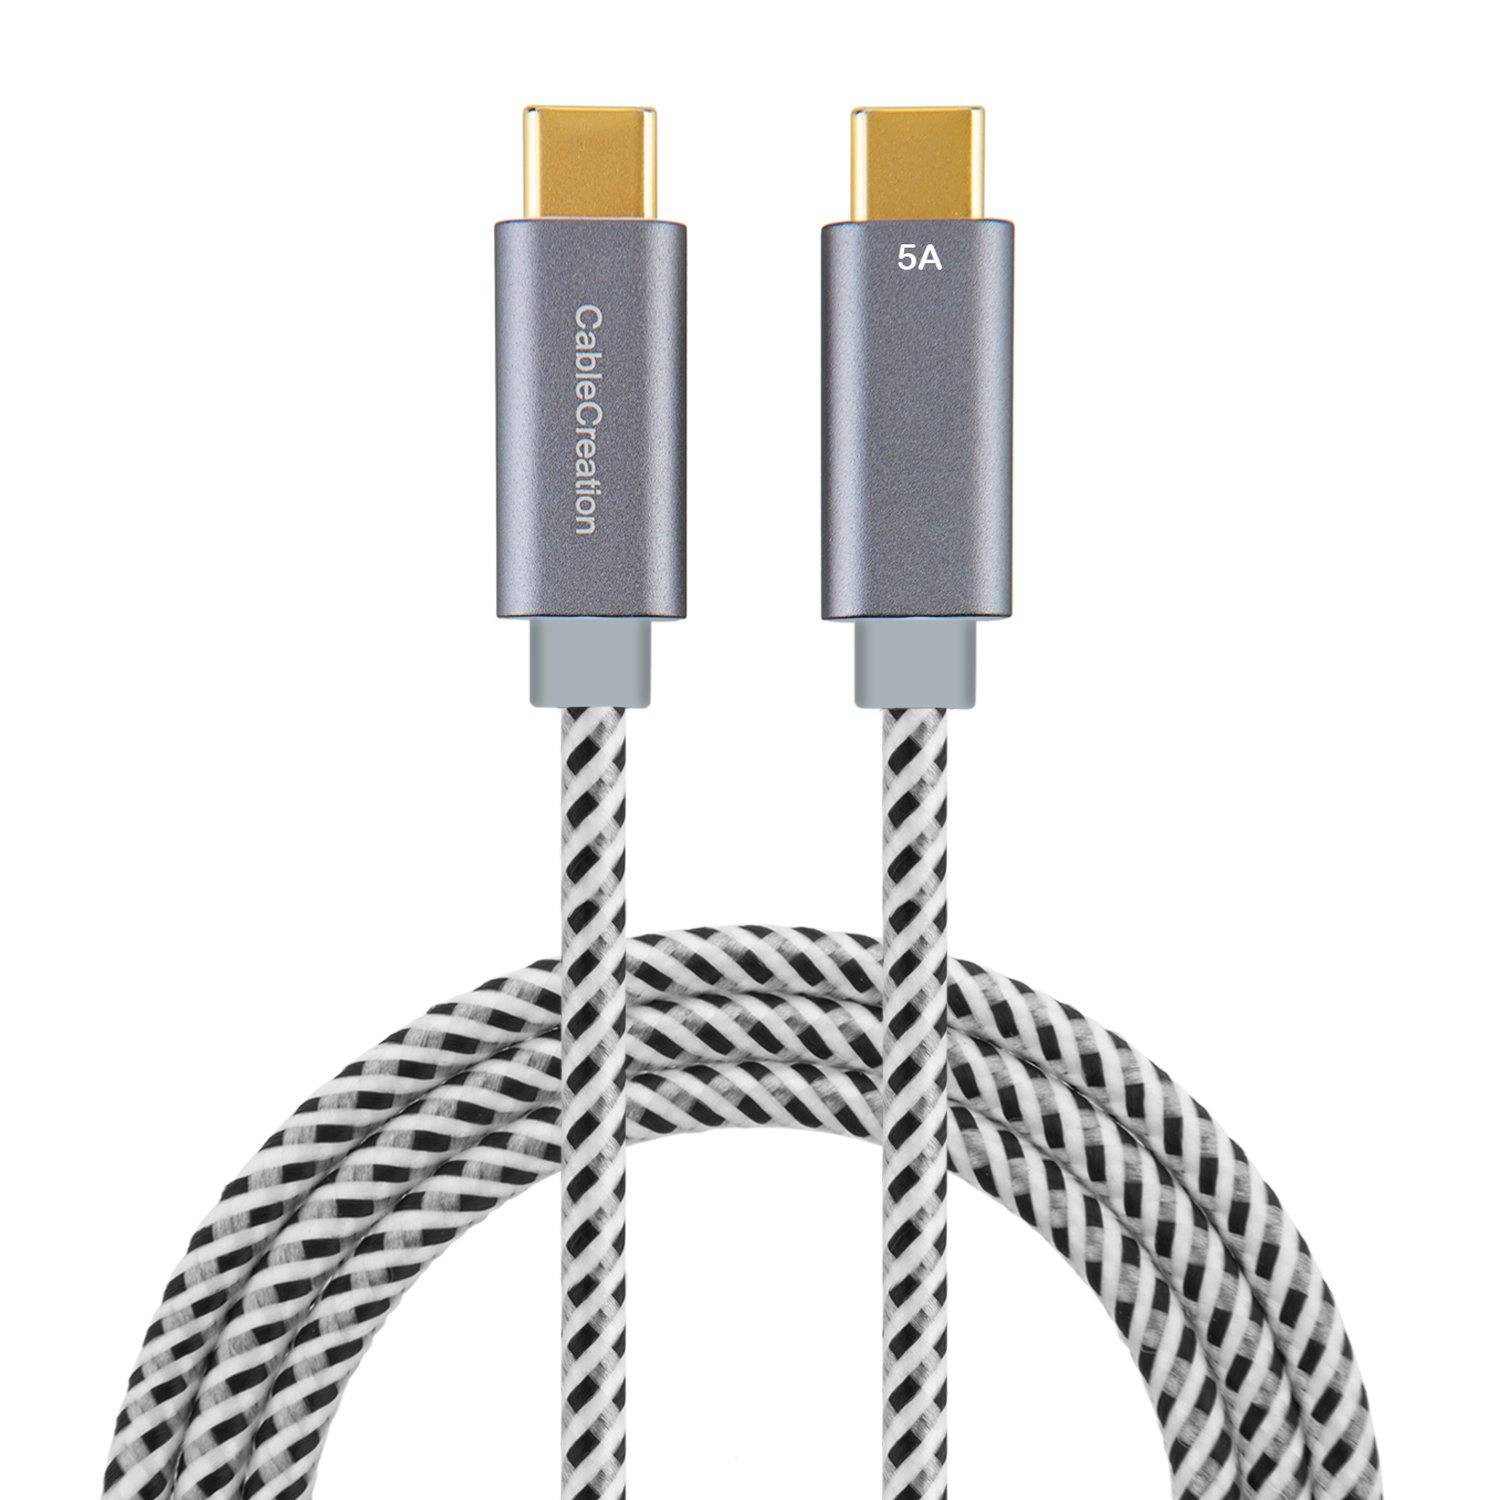 USB Type C Cable (5A), CableCreation 6ft USB-C to USB-C Cord, Support 100W Power Delivery, Fast Charge Cable compatible with Macbook Pro 15-inch,Pixel XL 2, 1.8M/Space Gray